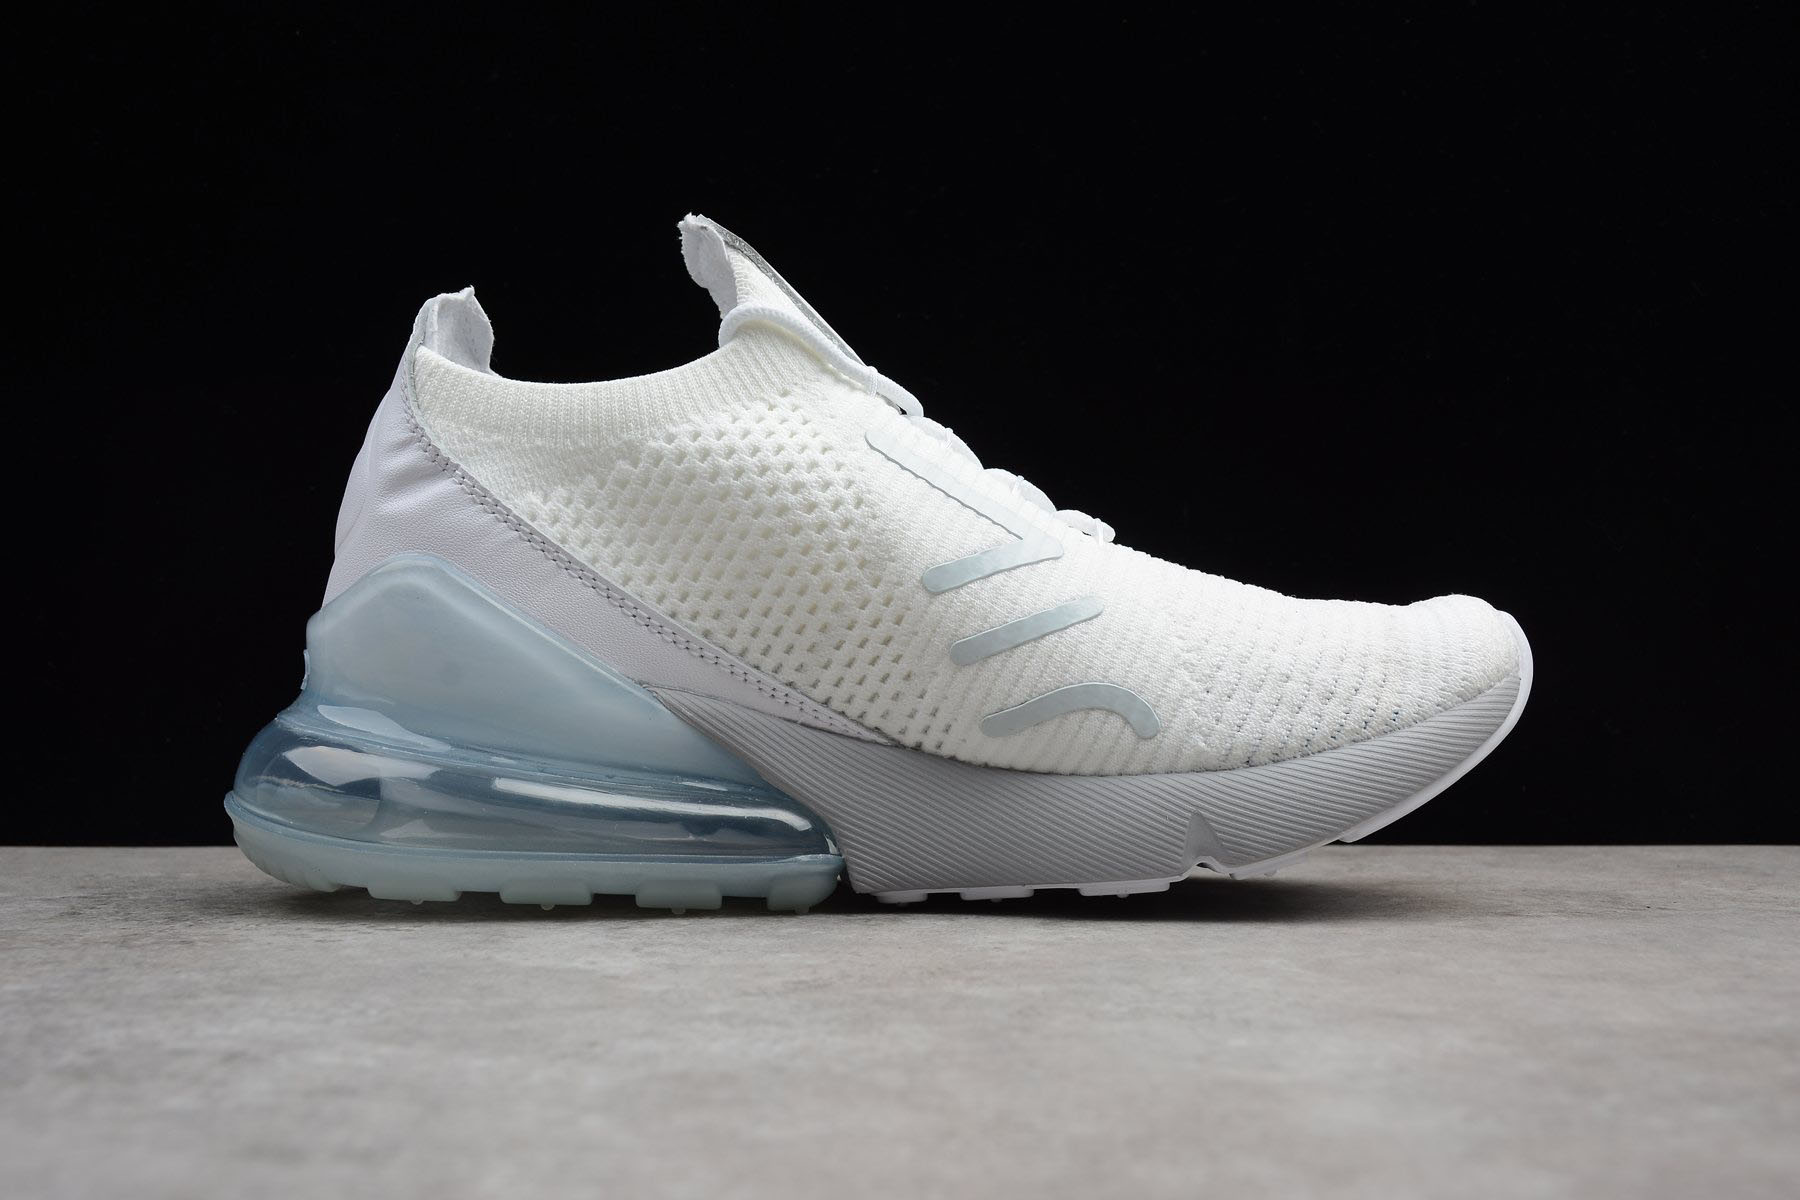 Male Nike Air Max 270 Flyknit Pure PlatinumBlack Dark Grey Chaussure AO1023 003